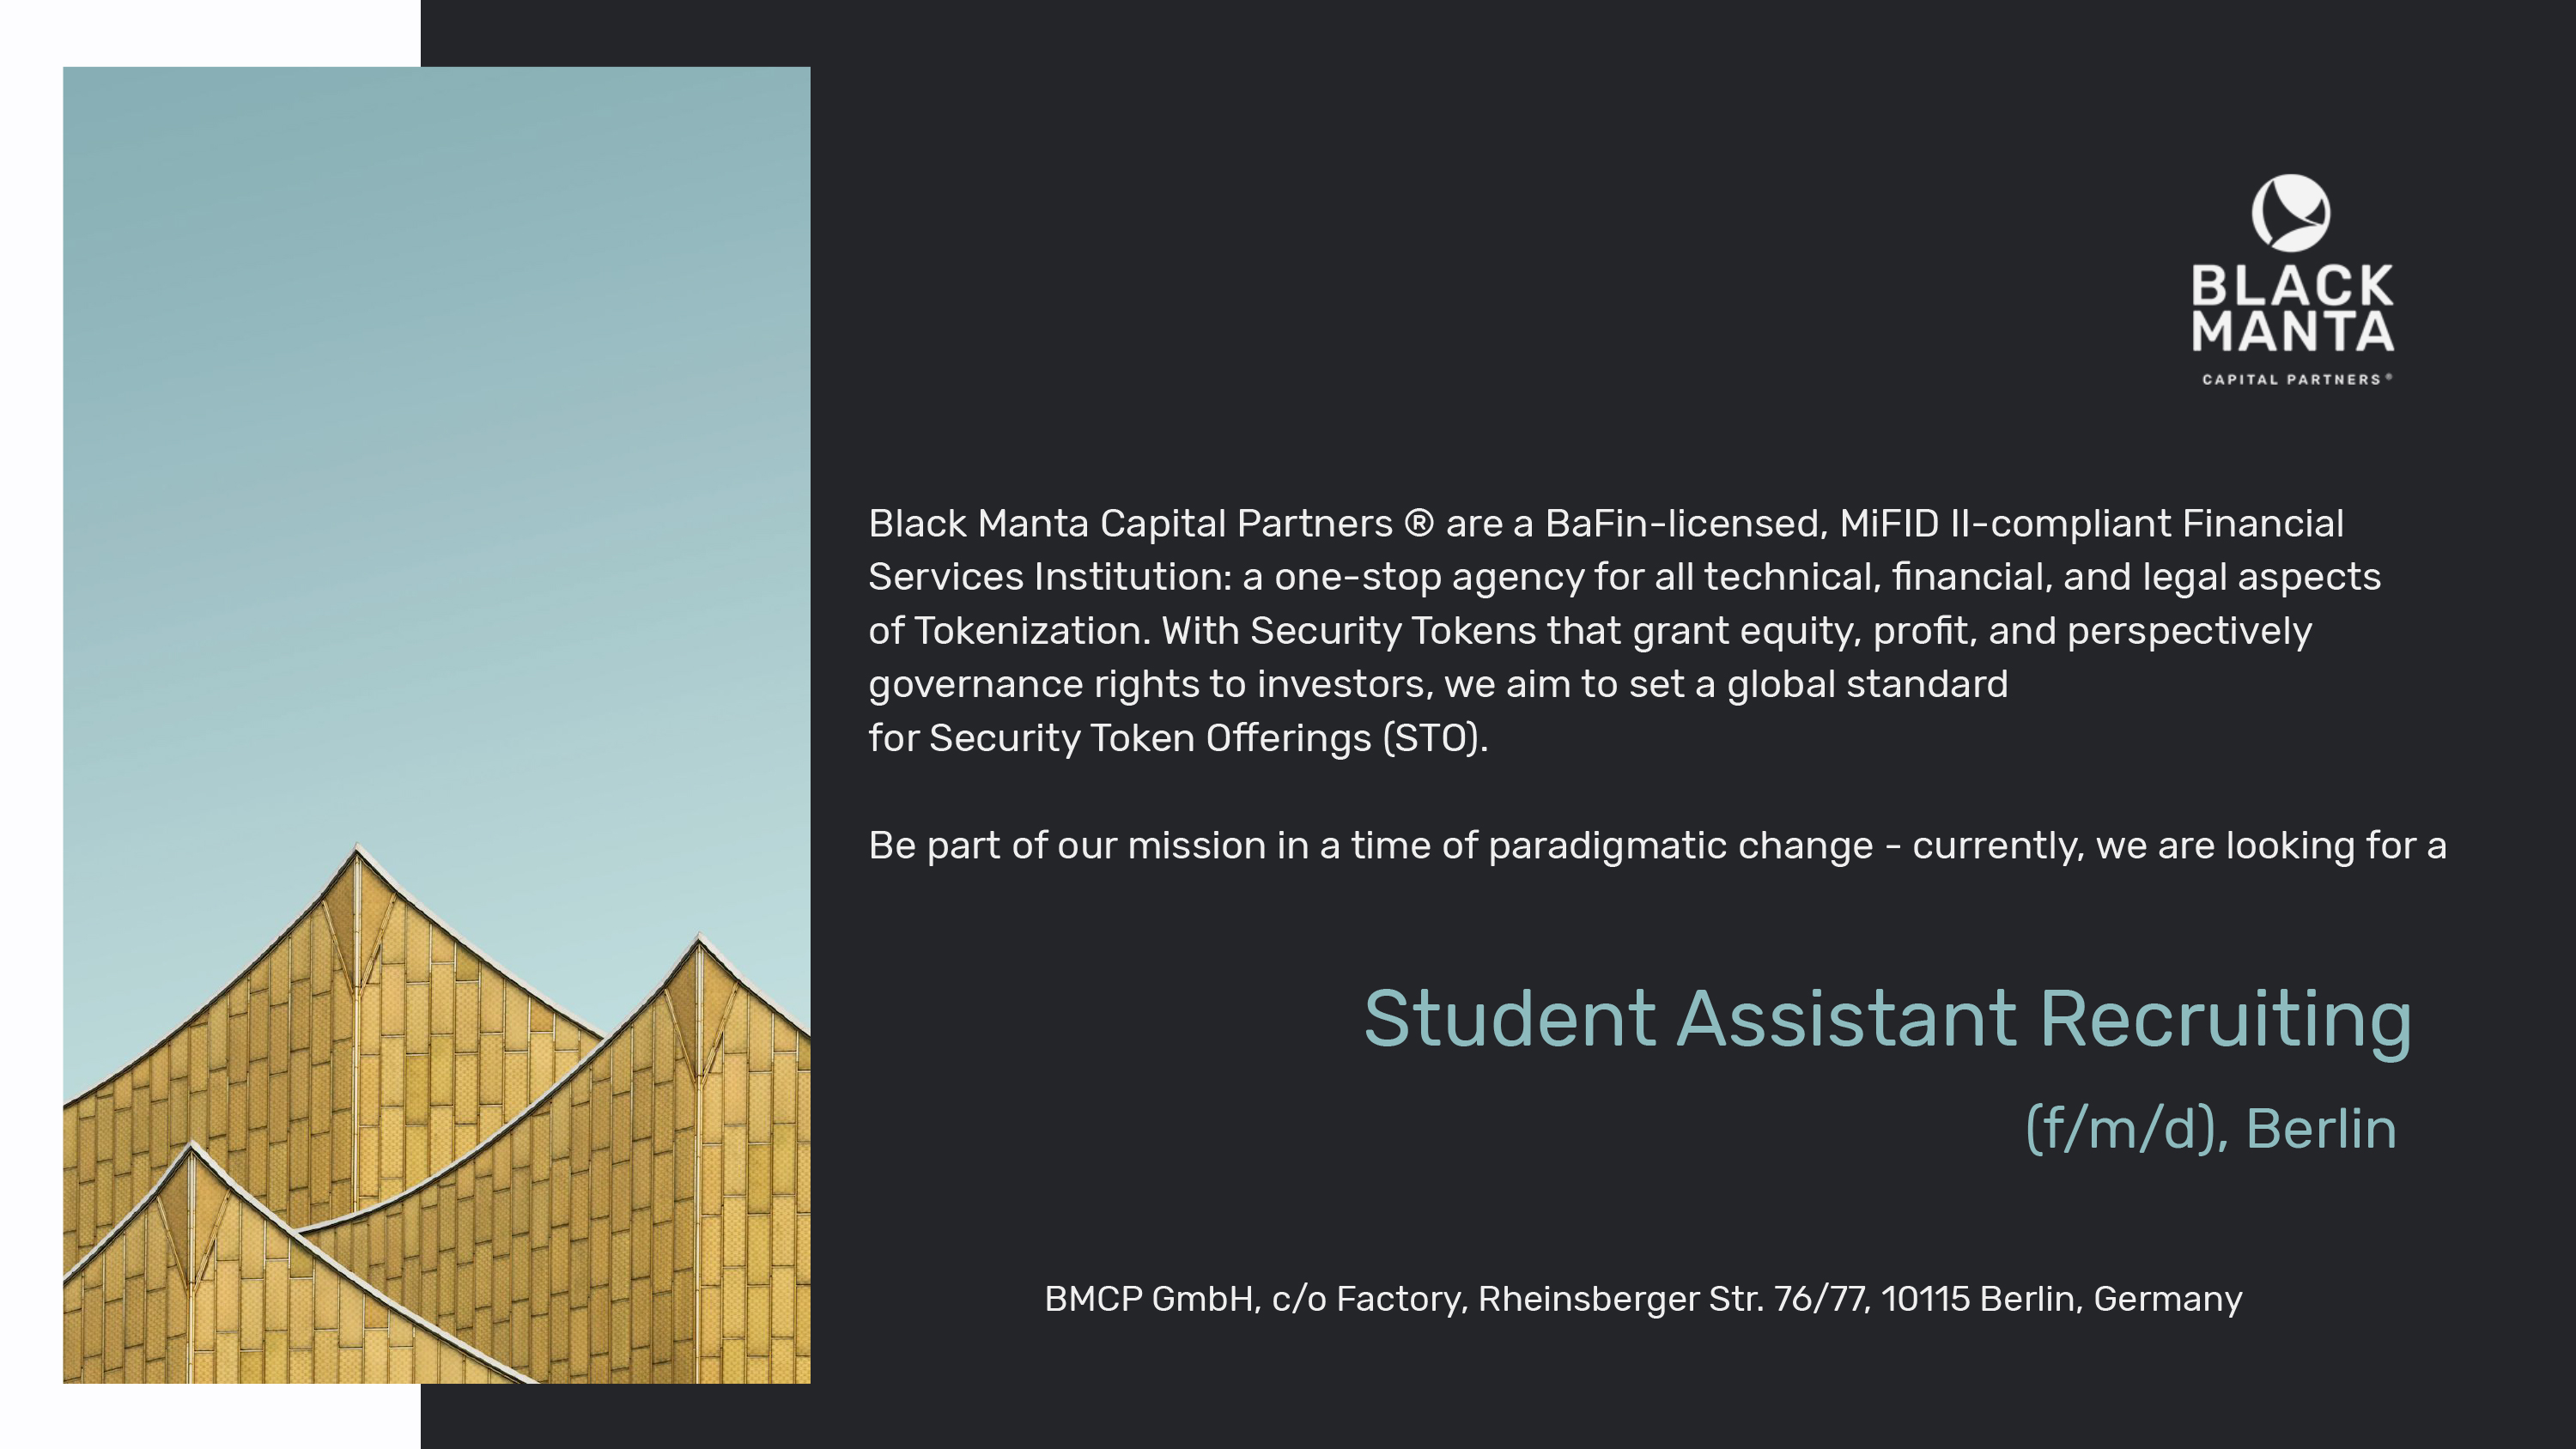 BER Student Assistant Recruiting